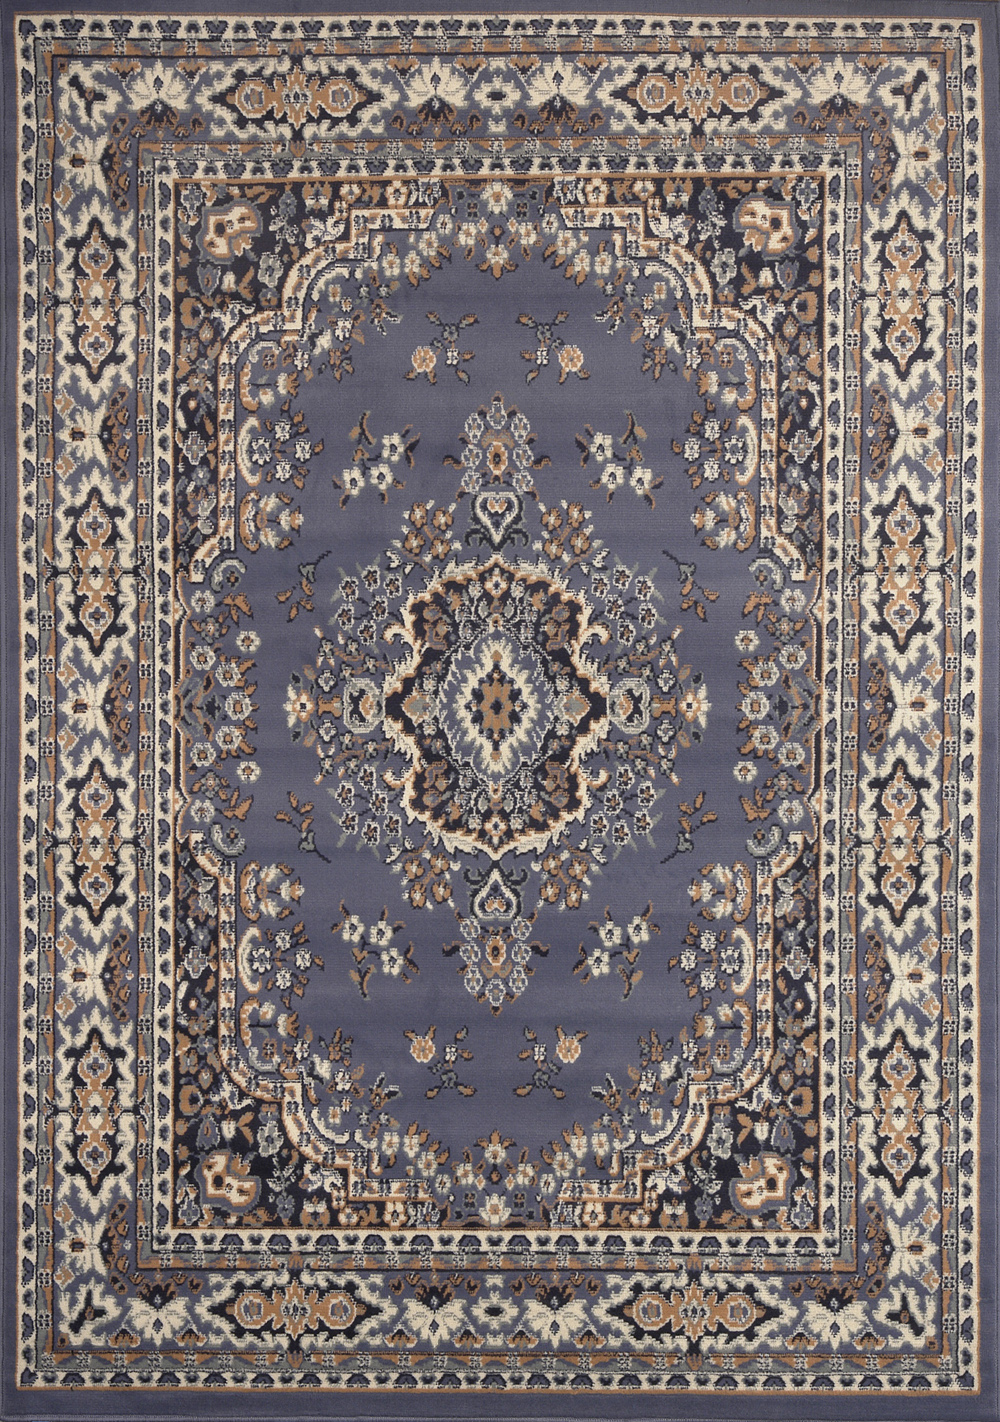 Large Traditional 8x11 Oriental Area Rug Persian Style Carpet Approx 78x108  eBay